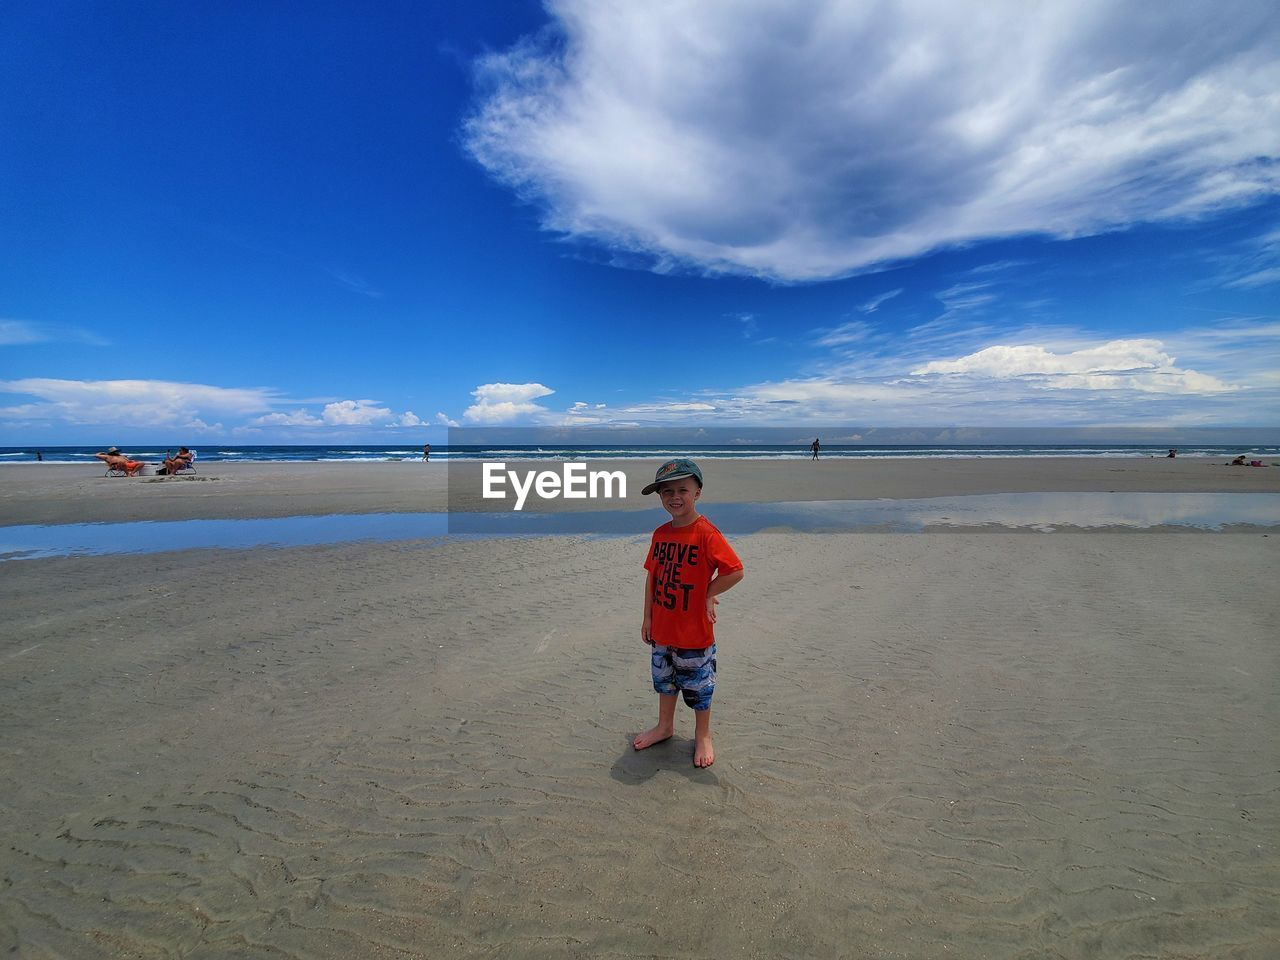 sky, beach, land, water, real people, cloud - sky, sand, sea, child, one person, full length, childhood, beauty in nature, scenics - nature, lifestyles, nature, casual clothing, leisure activity, boys, outdoors